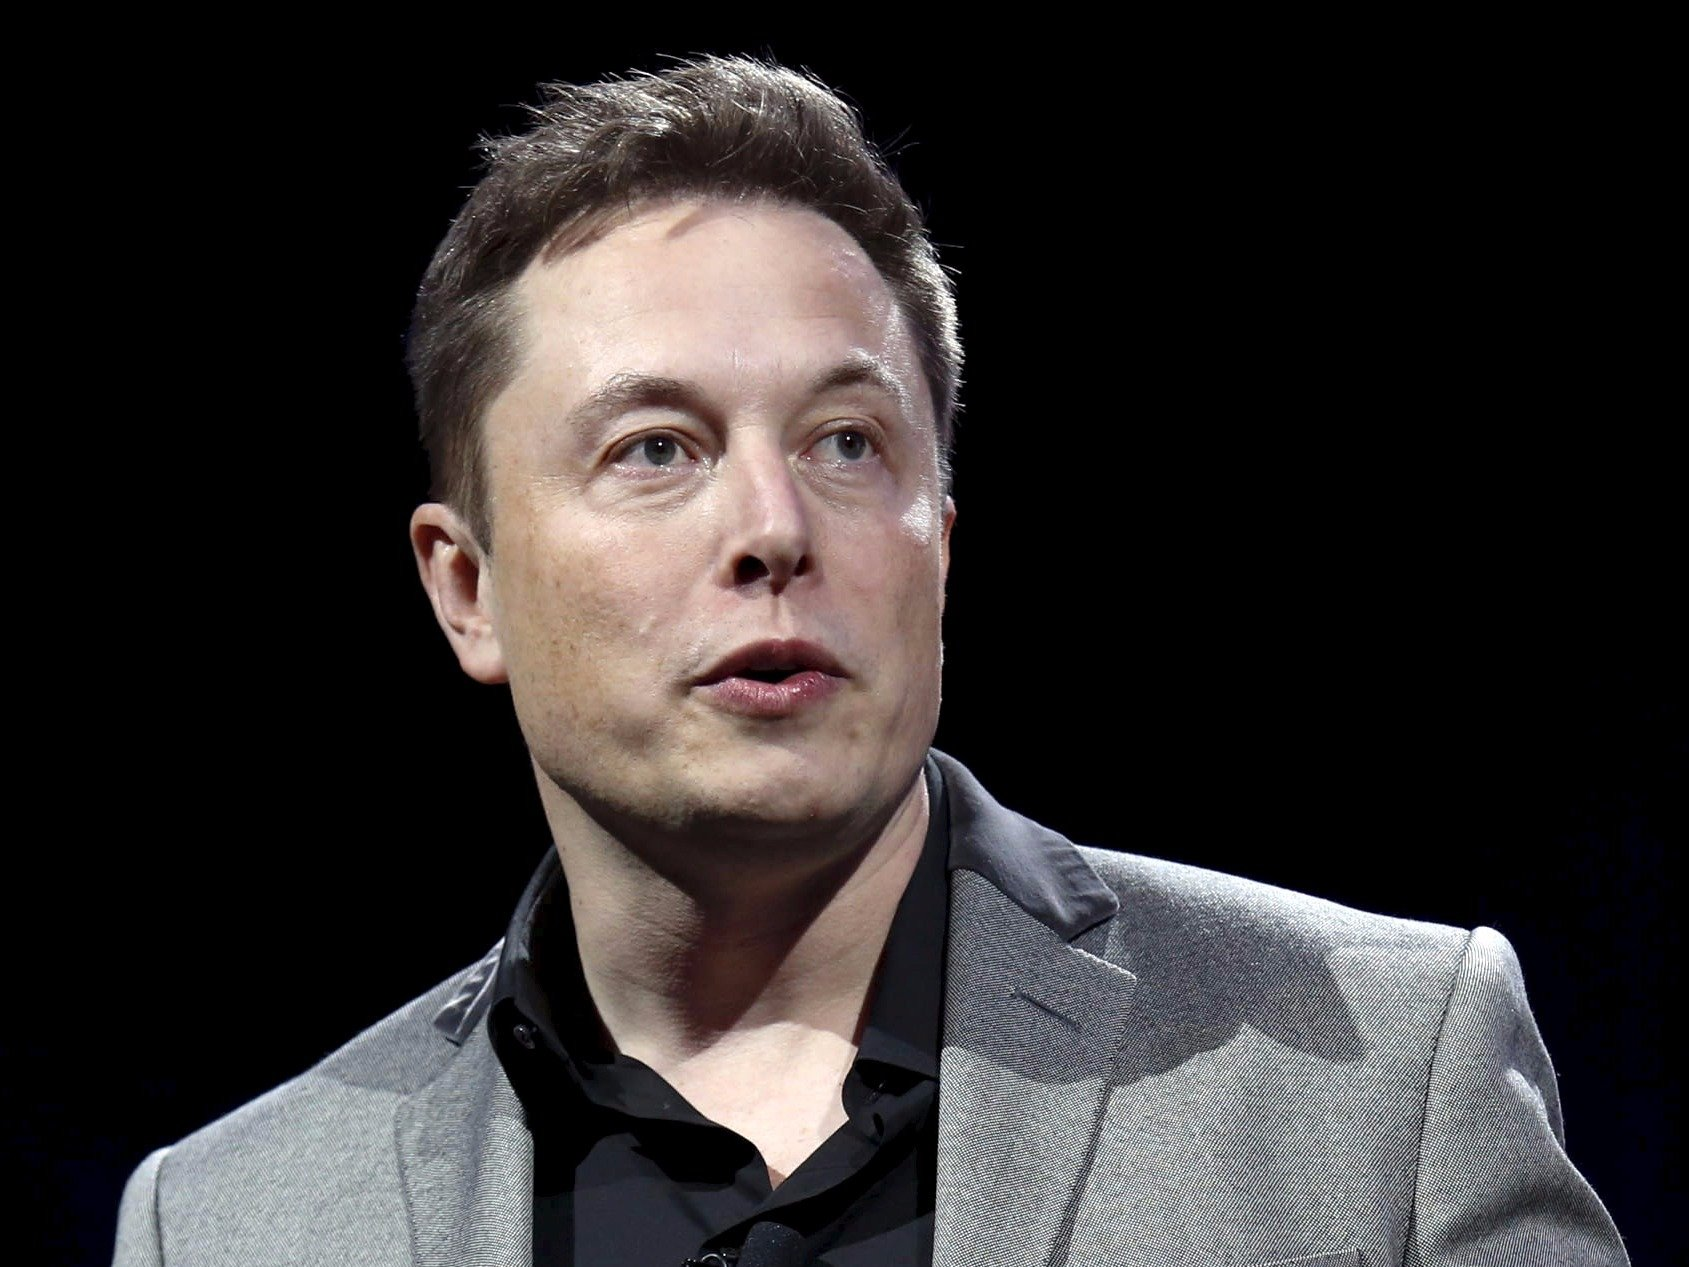 ELON MUSK SAYS WE'RE LIVING IN THE MATRIX, BUT NOT THE MATRIX RELOADED